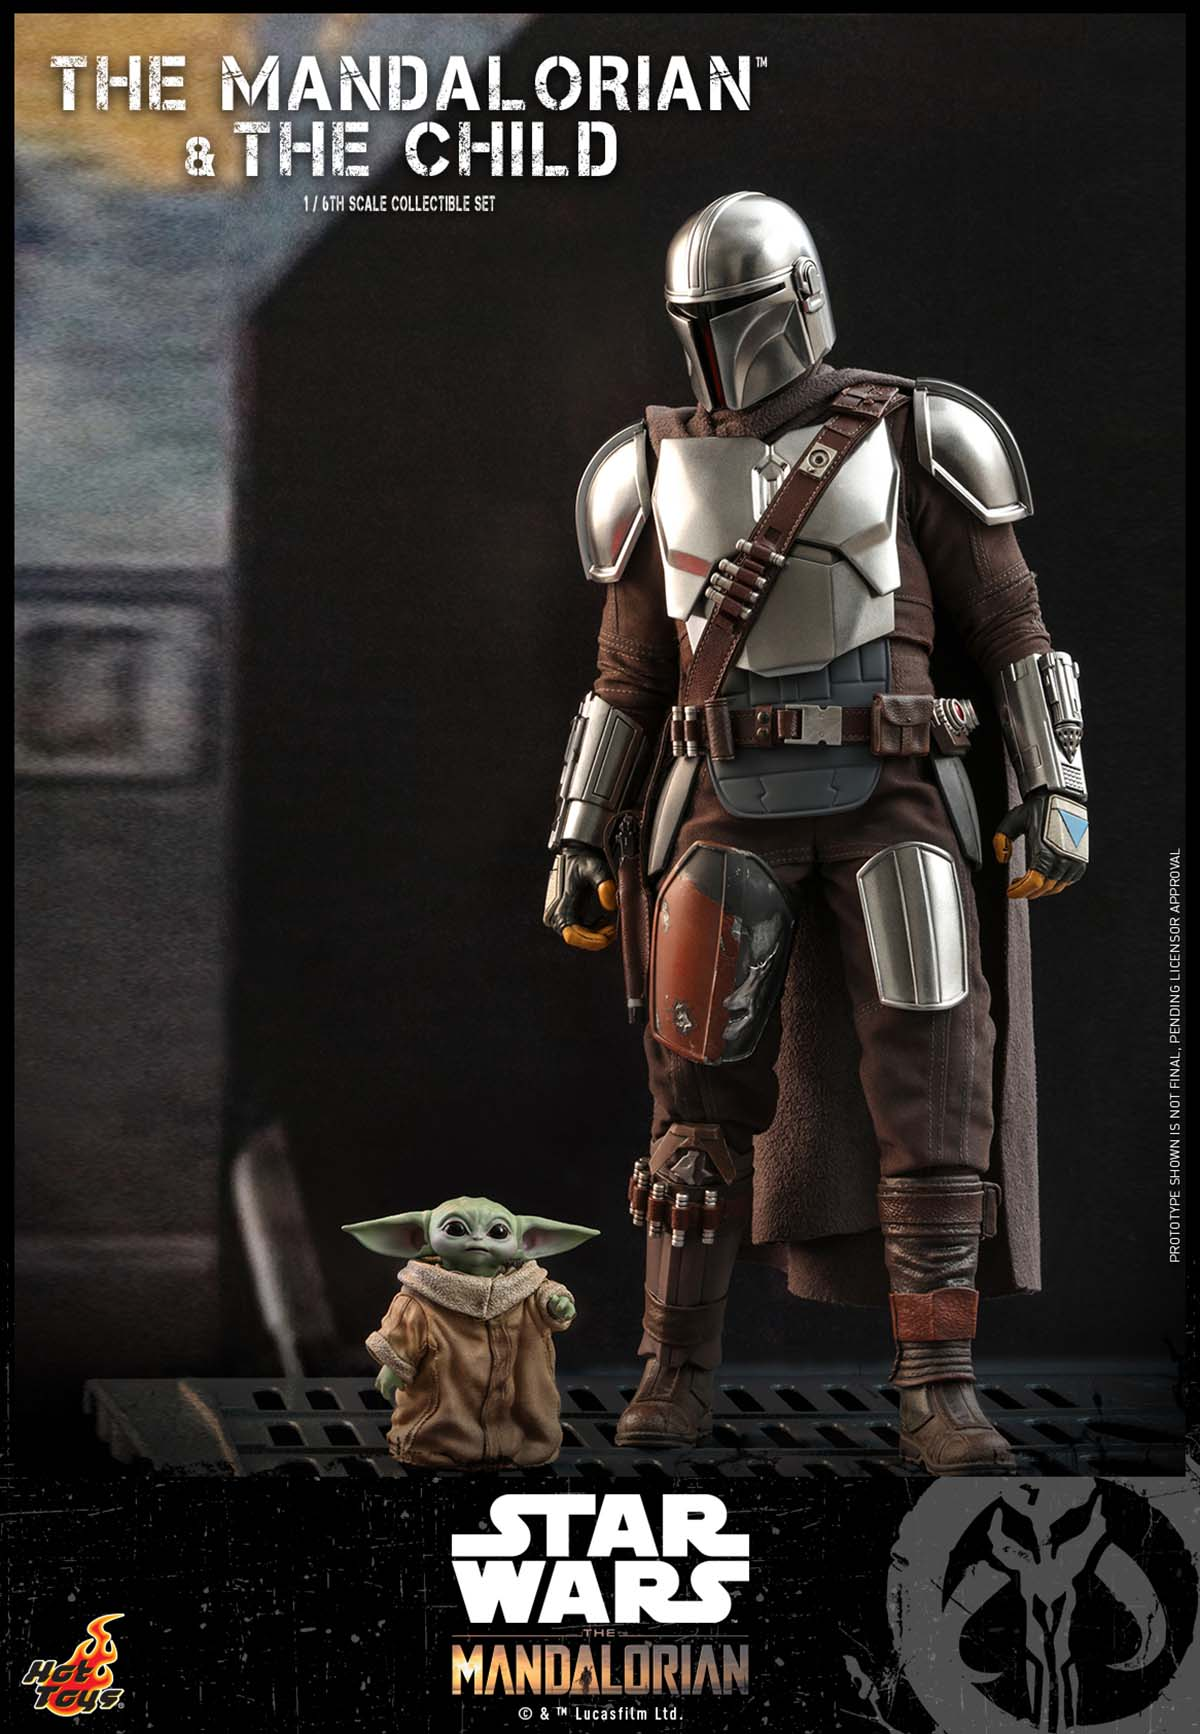 hot-toys-stm-mandalorian-and-child-collectible-set_pr1